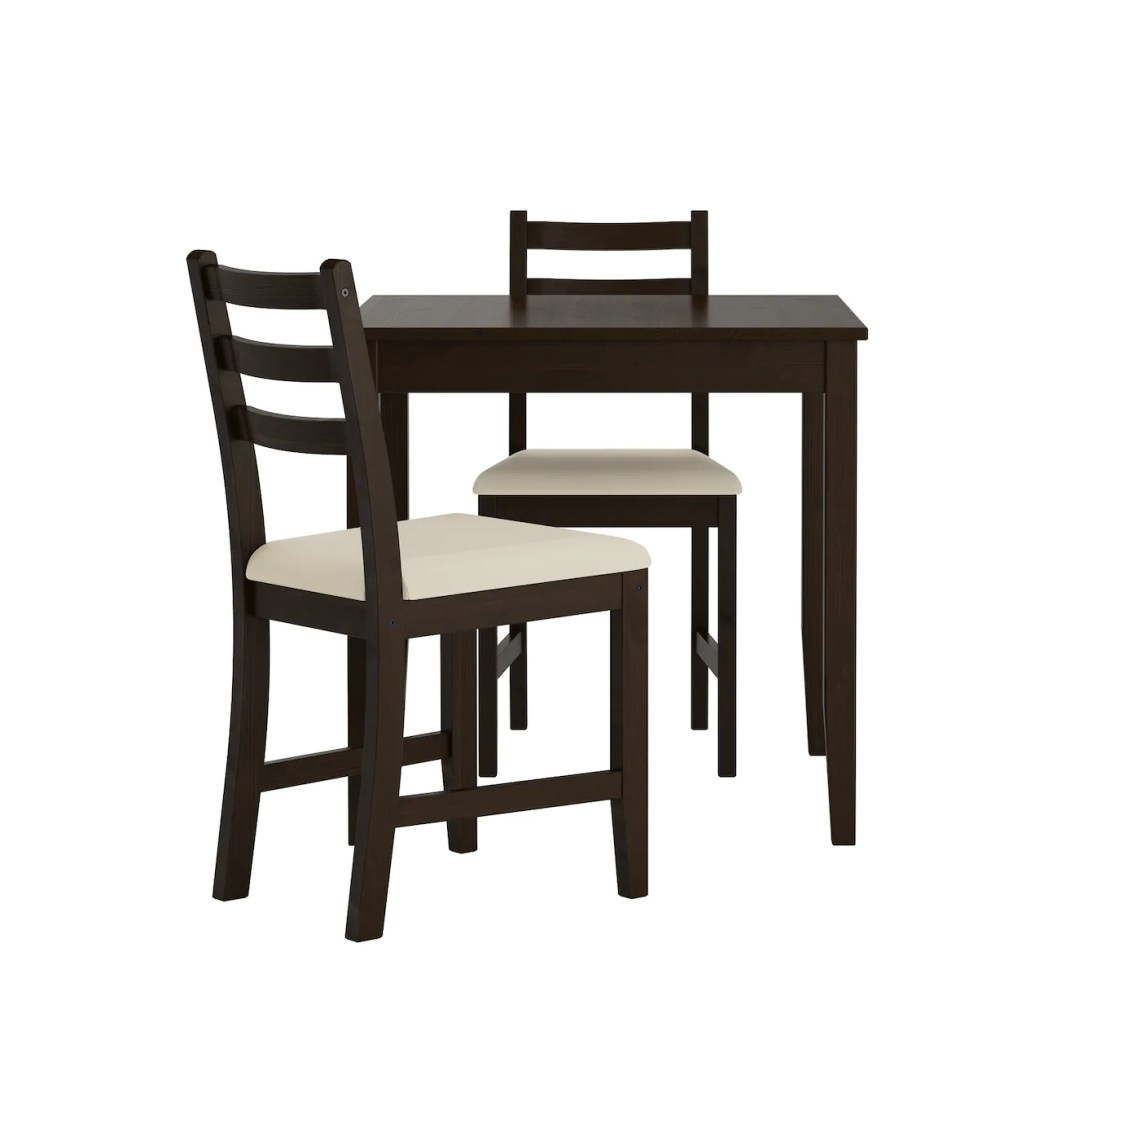 Image Result For Ikea Dining Room Table And Chairs